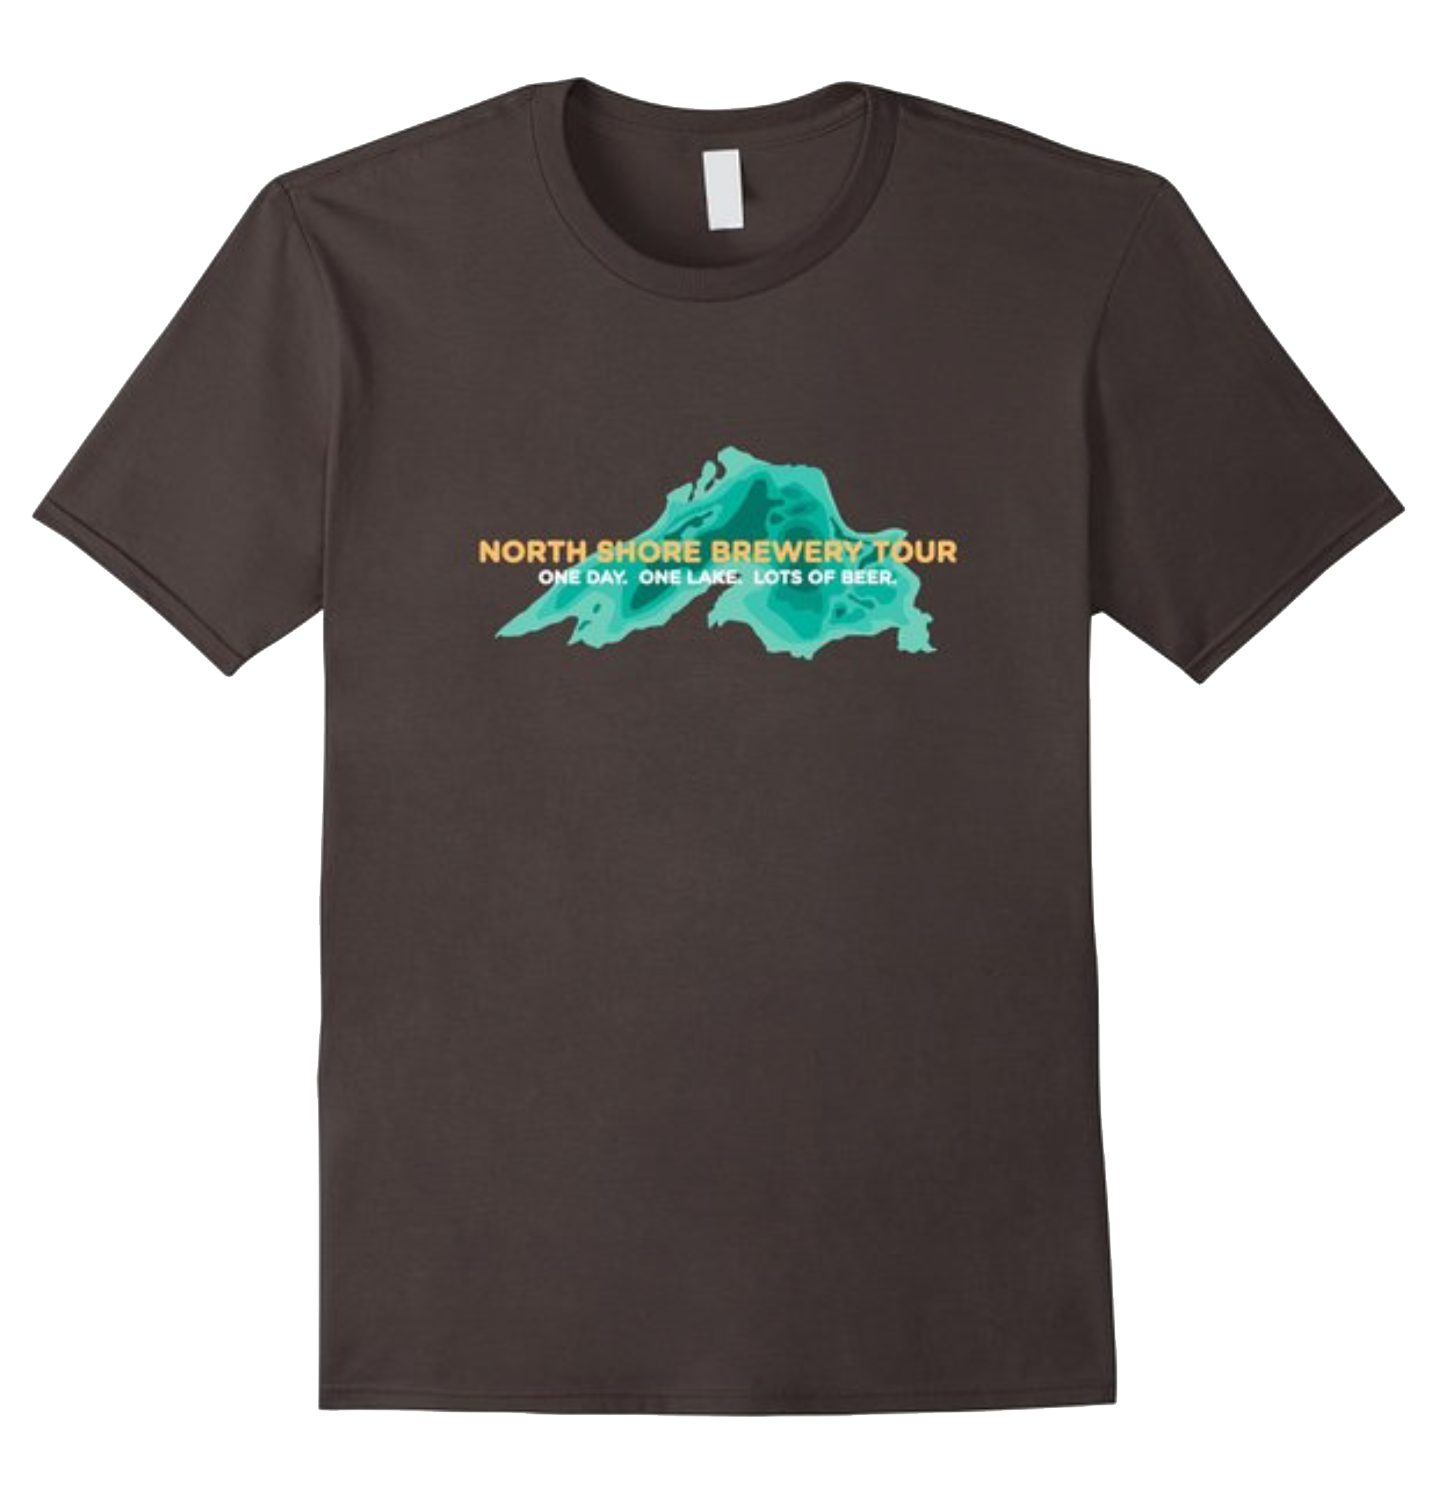 North Shore Brewery Tour T-Shirt